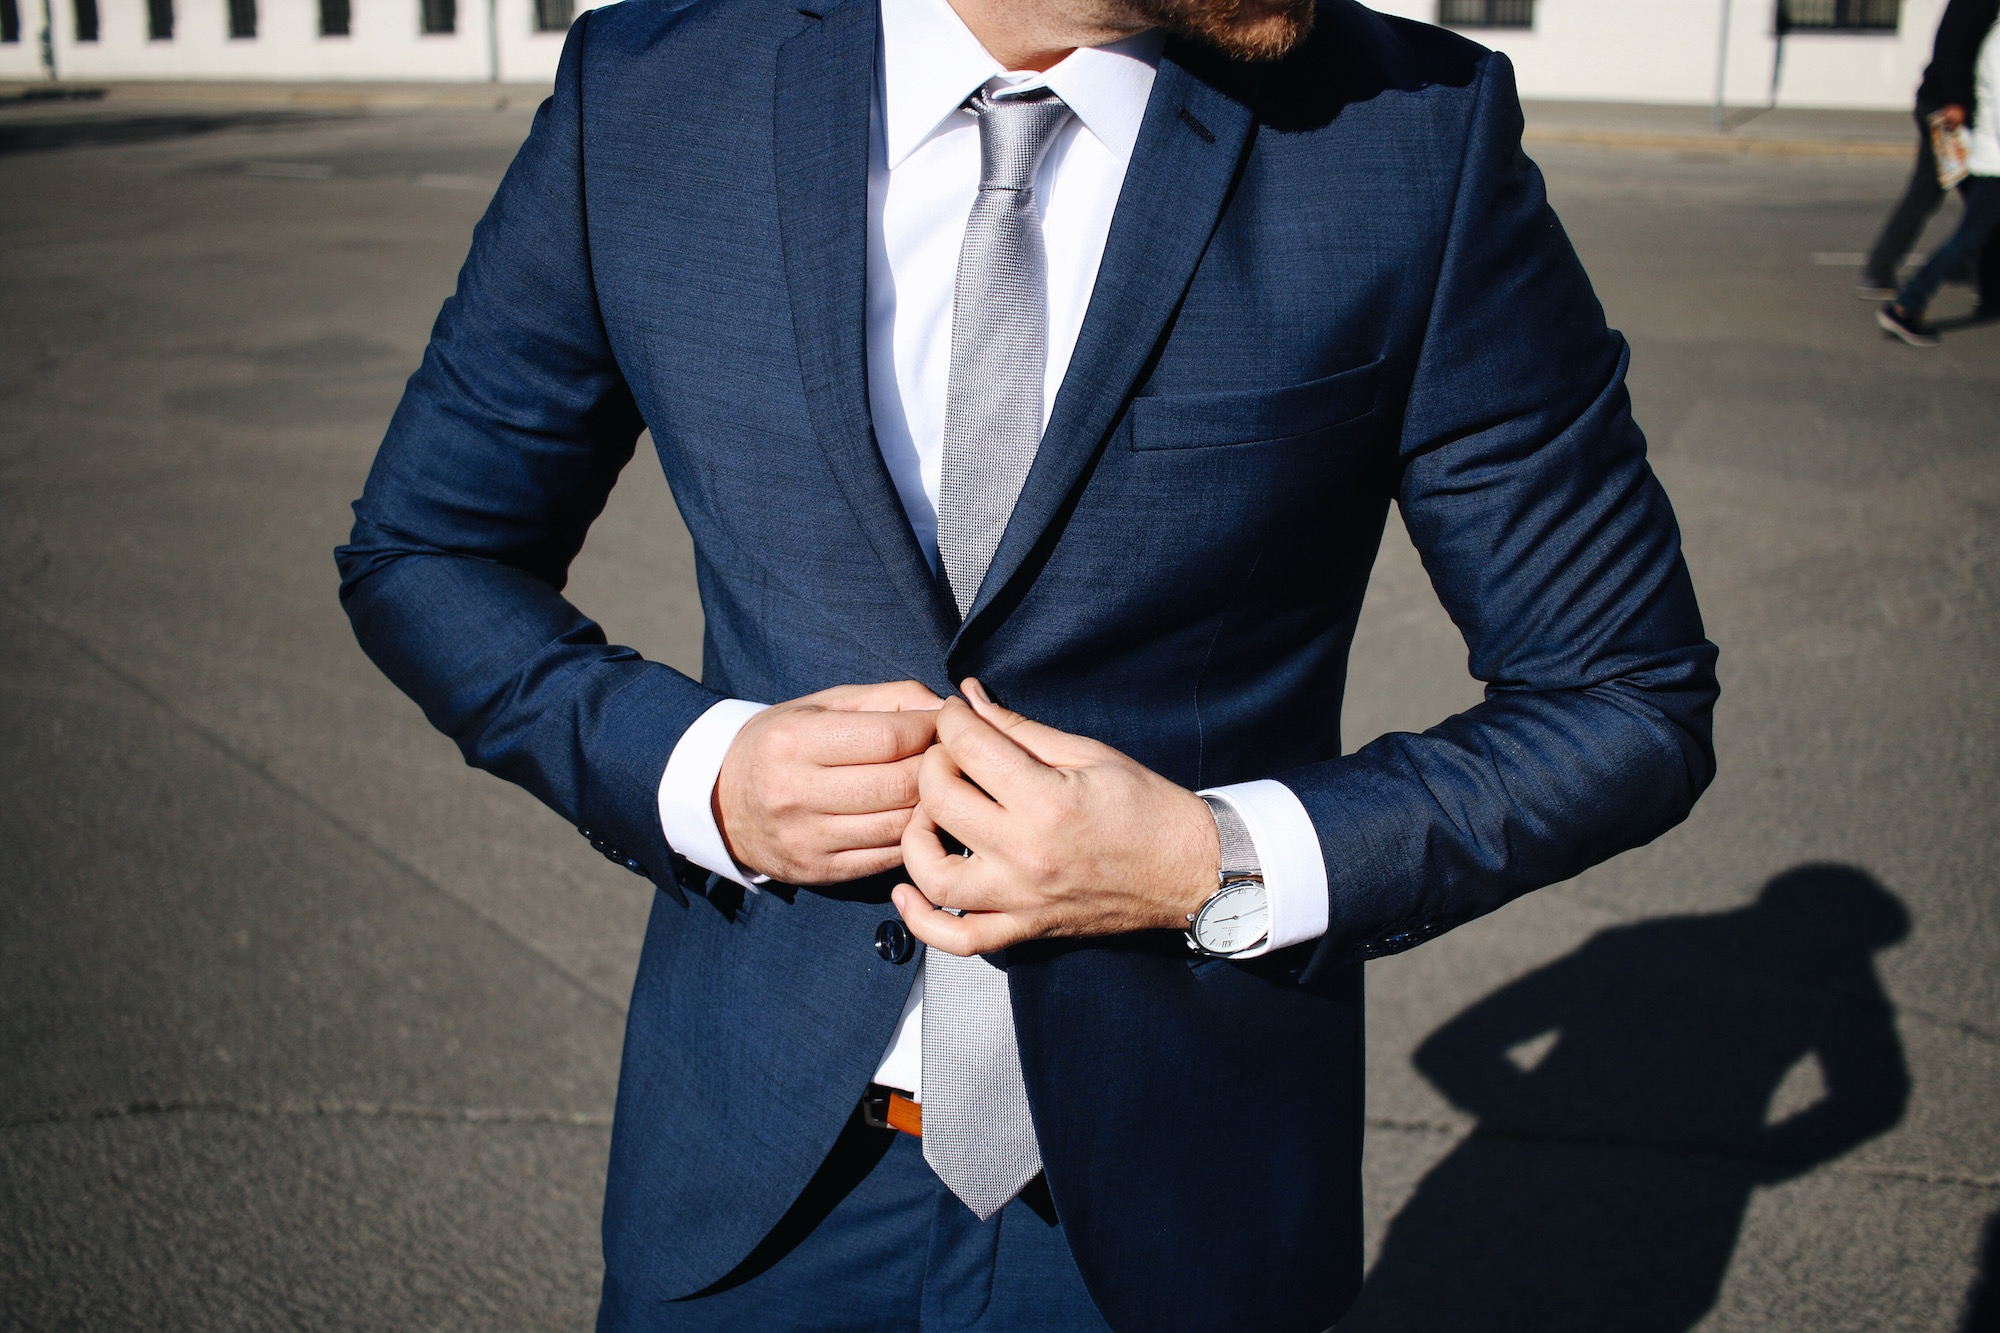 Tiger-Of-Sweden-Suit-Mix-Match_Three-ways-to-wear-a-suit_Meanwhile-in-Awesometown_Austrian-Mens-Fashion-and-Lifestyle-Blogger5